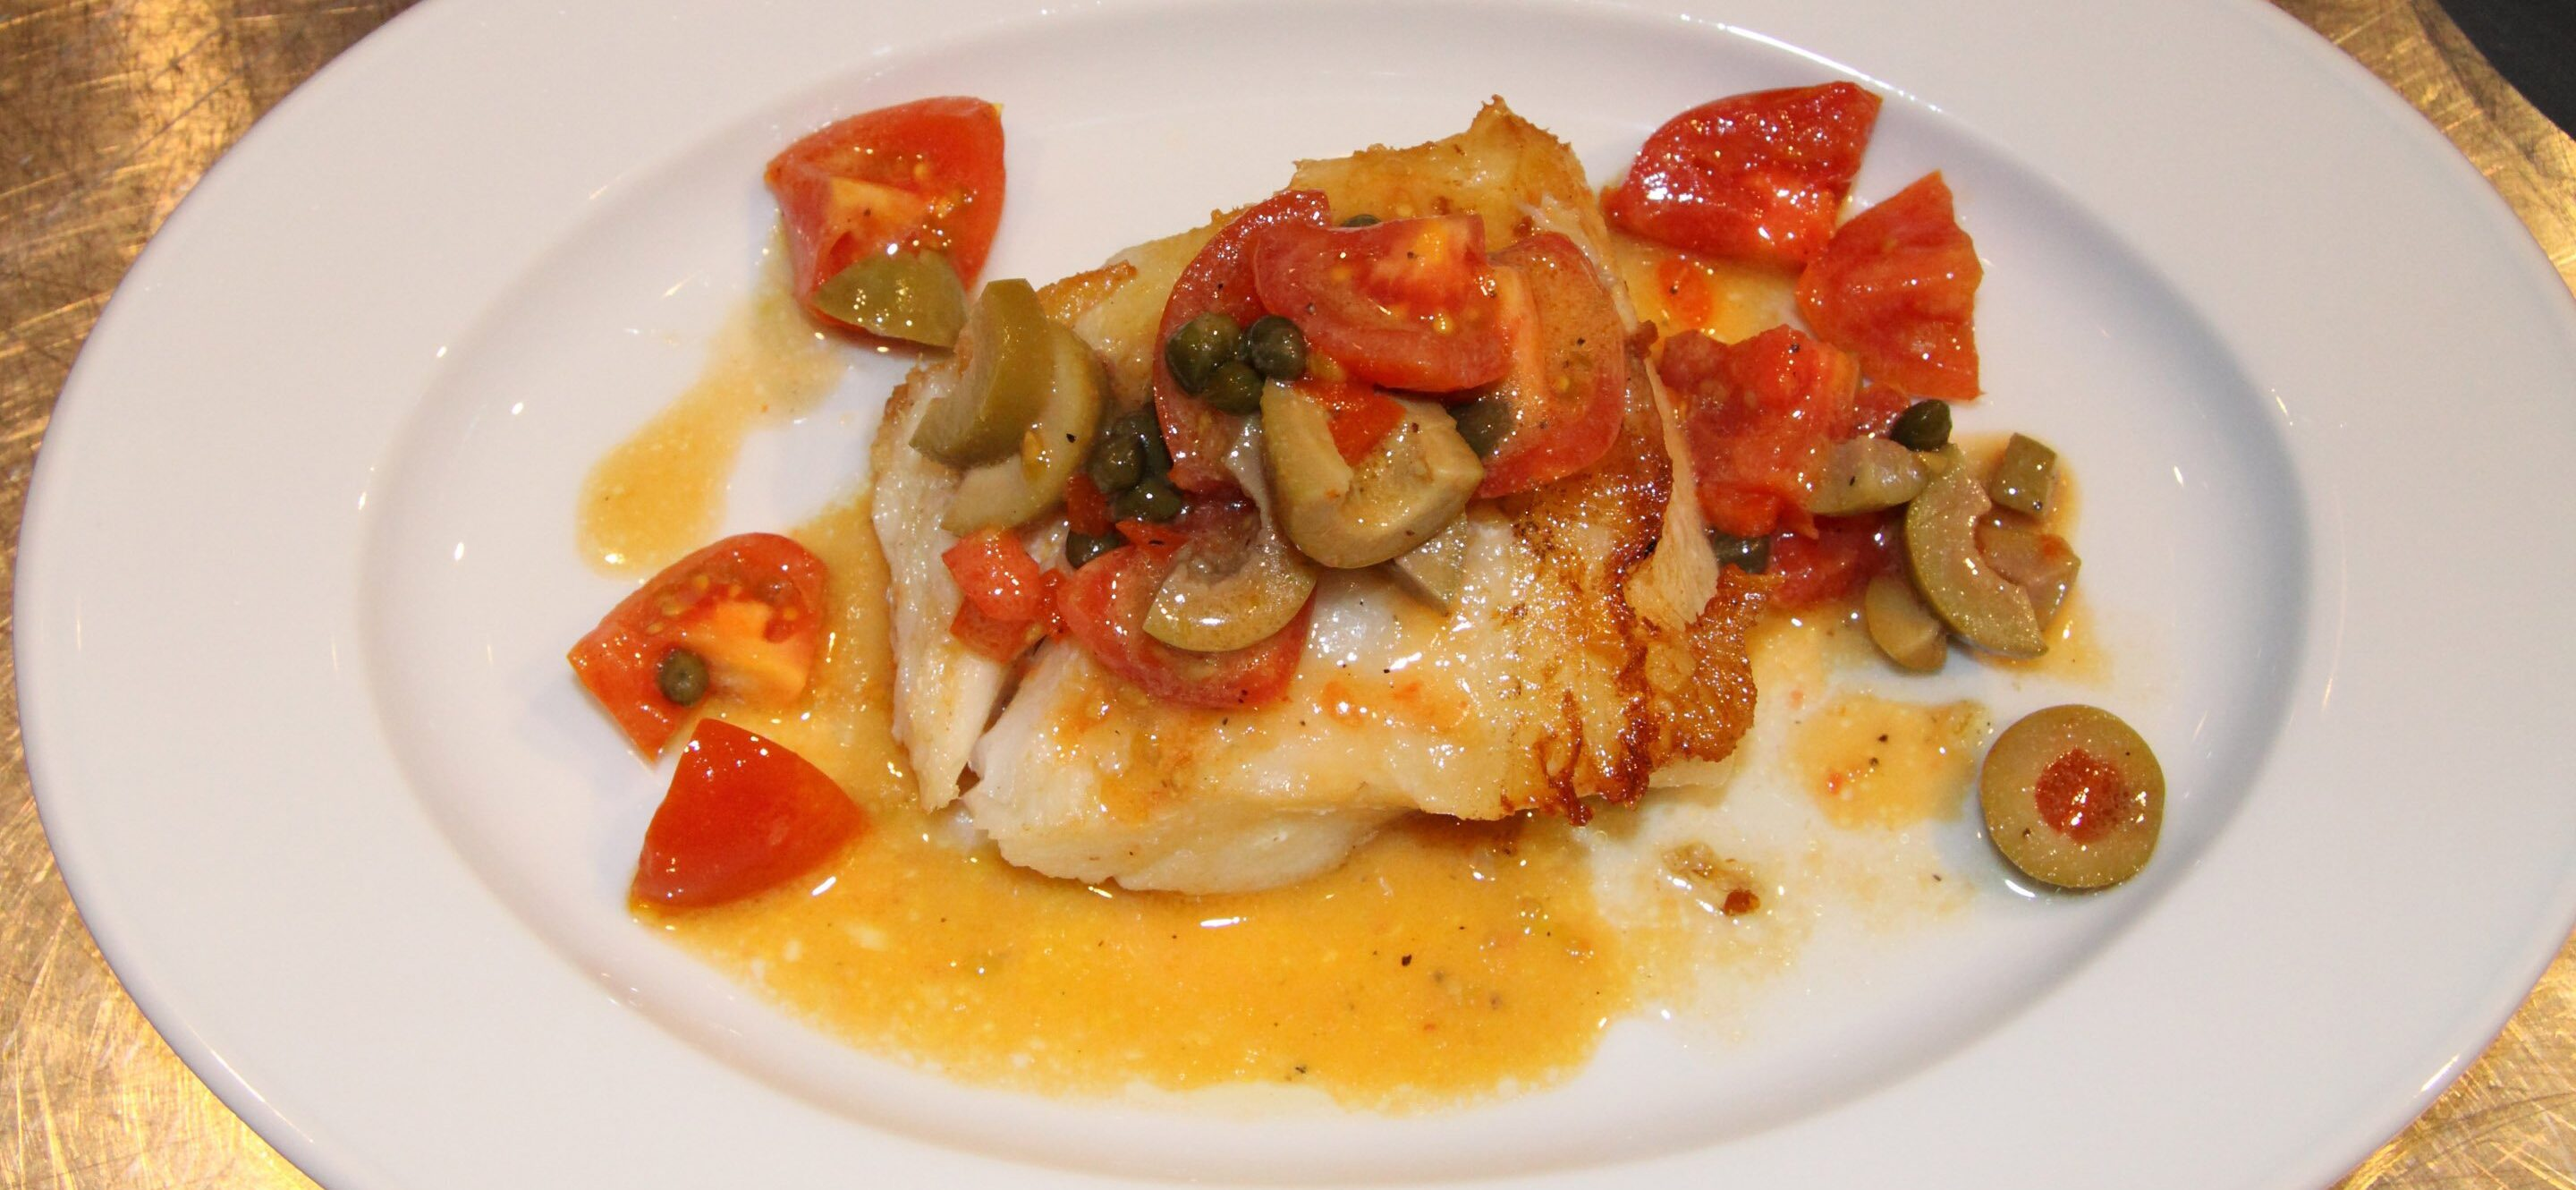 chilean sea bass with tomato relish